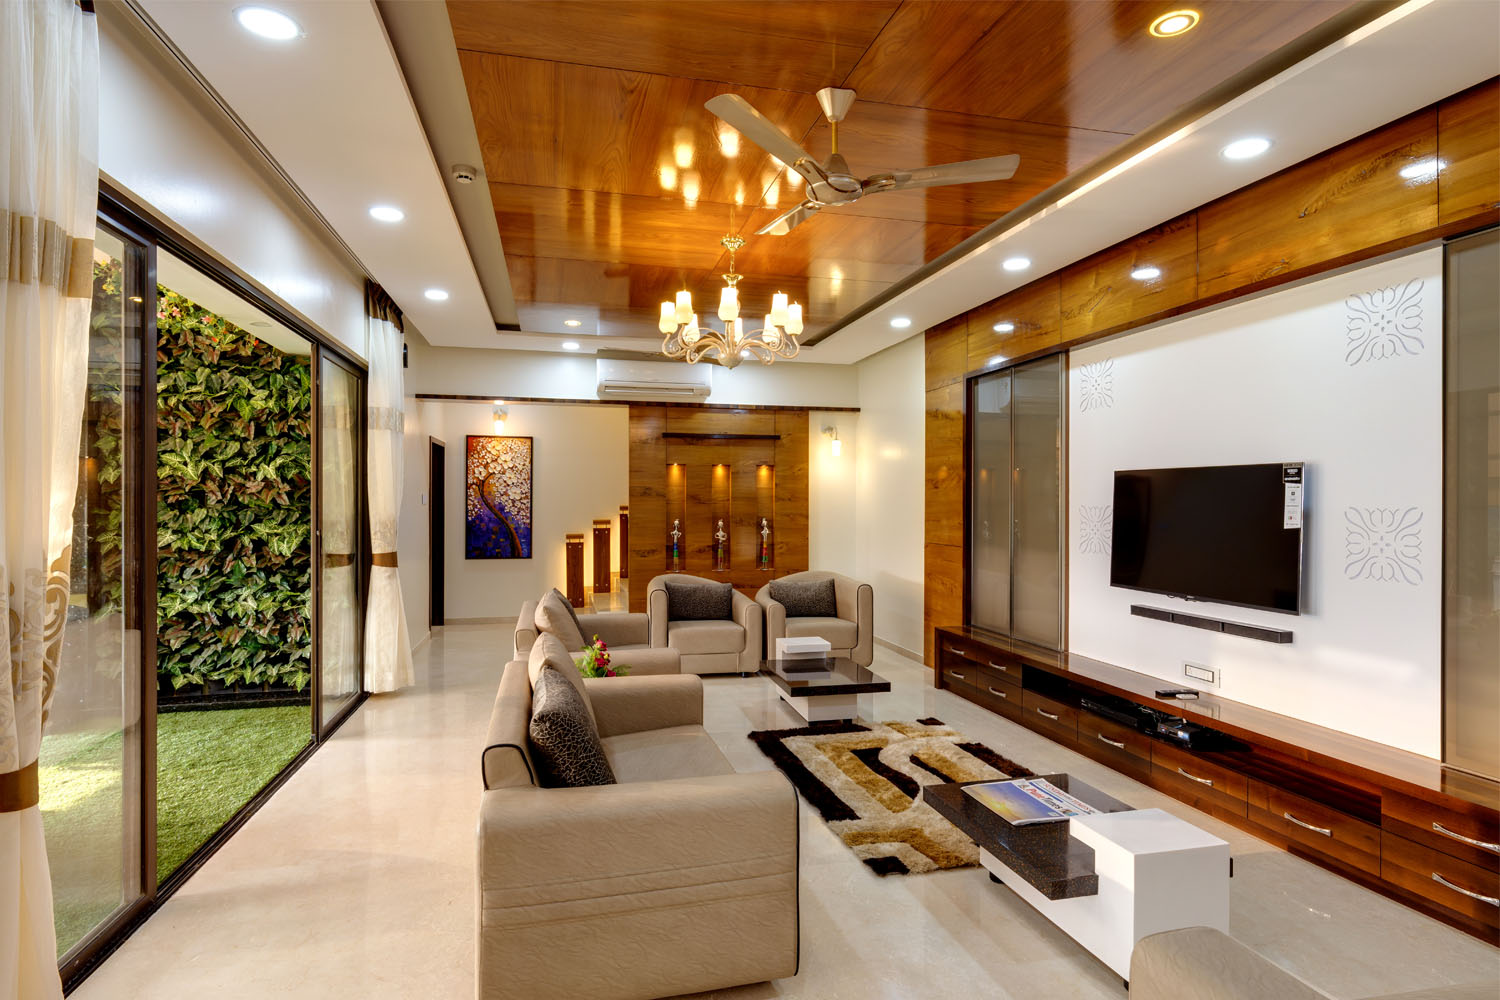 Best interior designer pune nerlekar interior designing for Best room interior